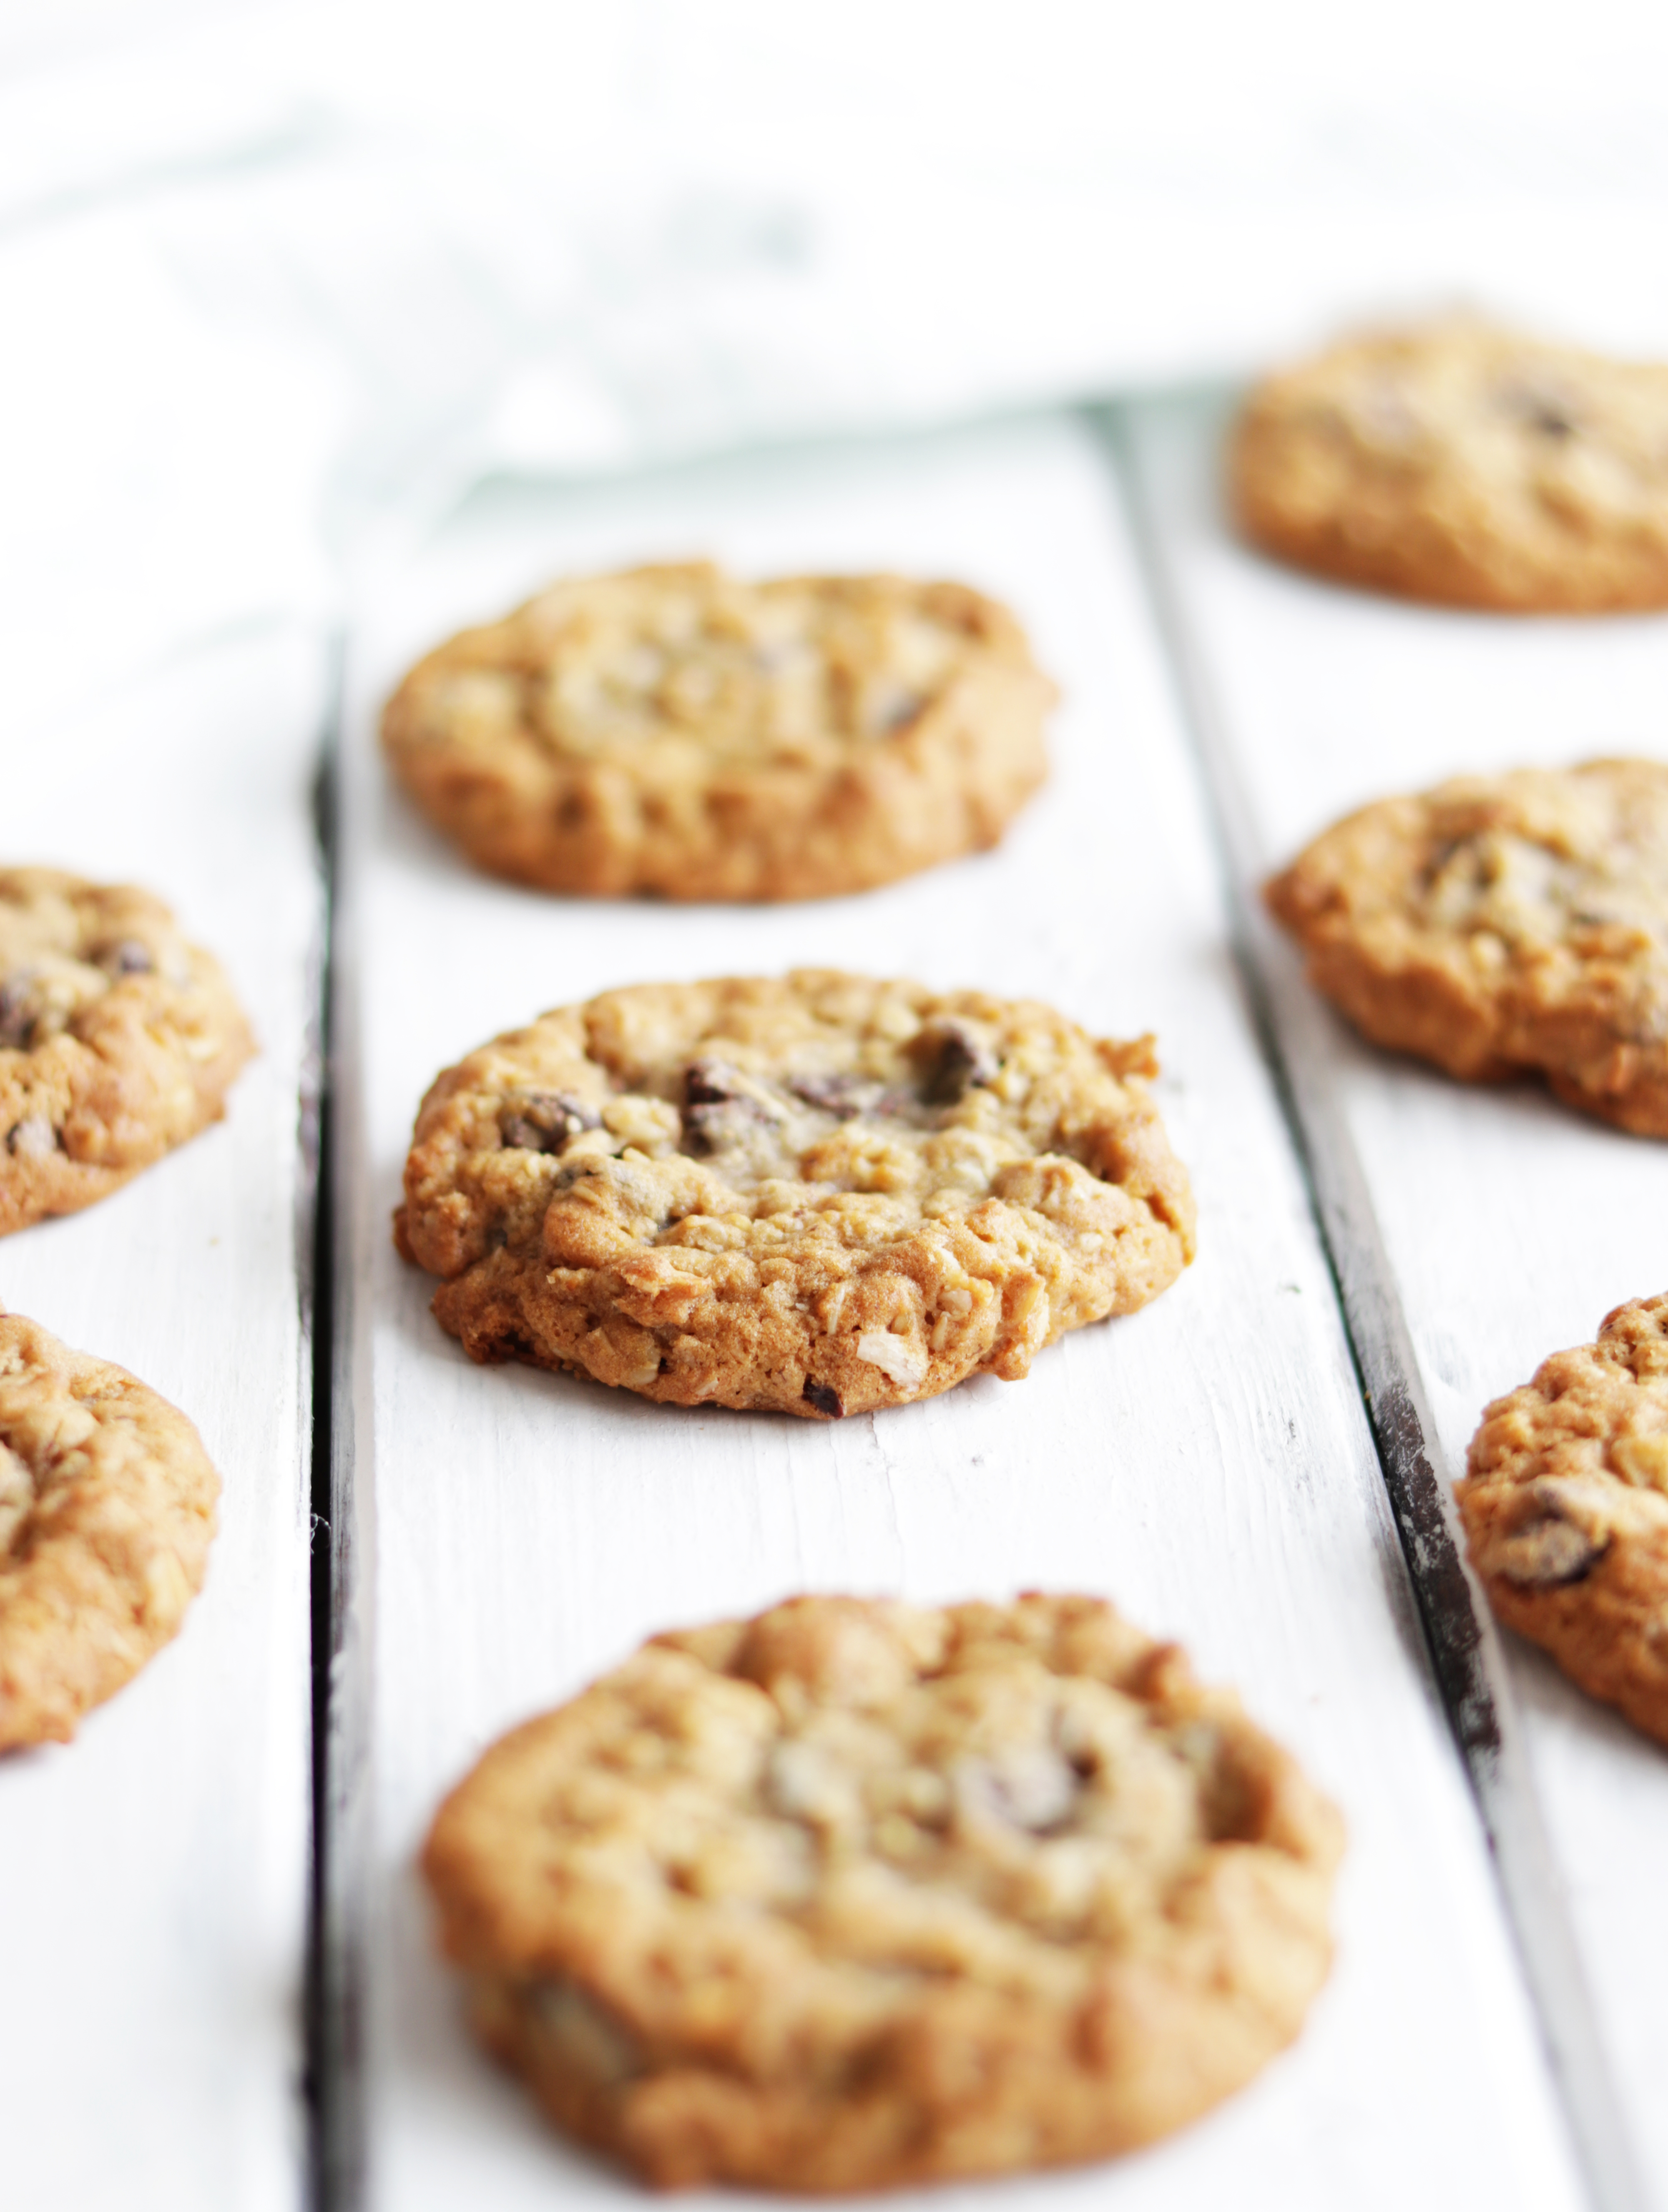 These are the softest, chewiest chocolate chip oatmeal cookies you will find anywhere!